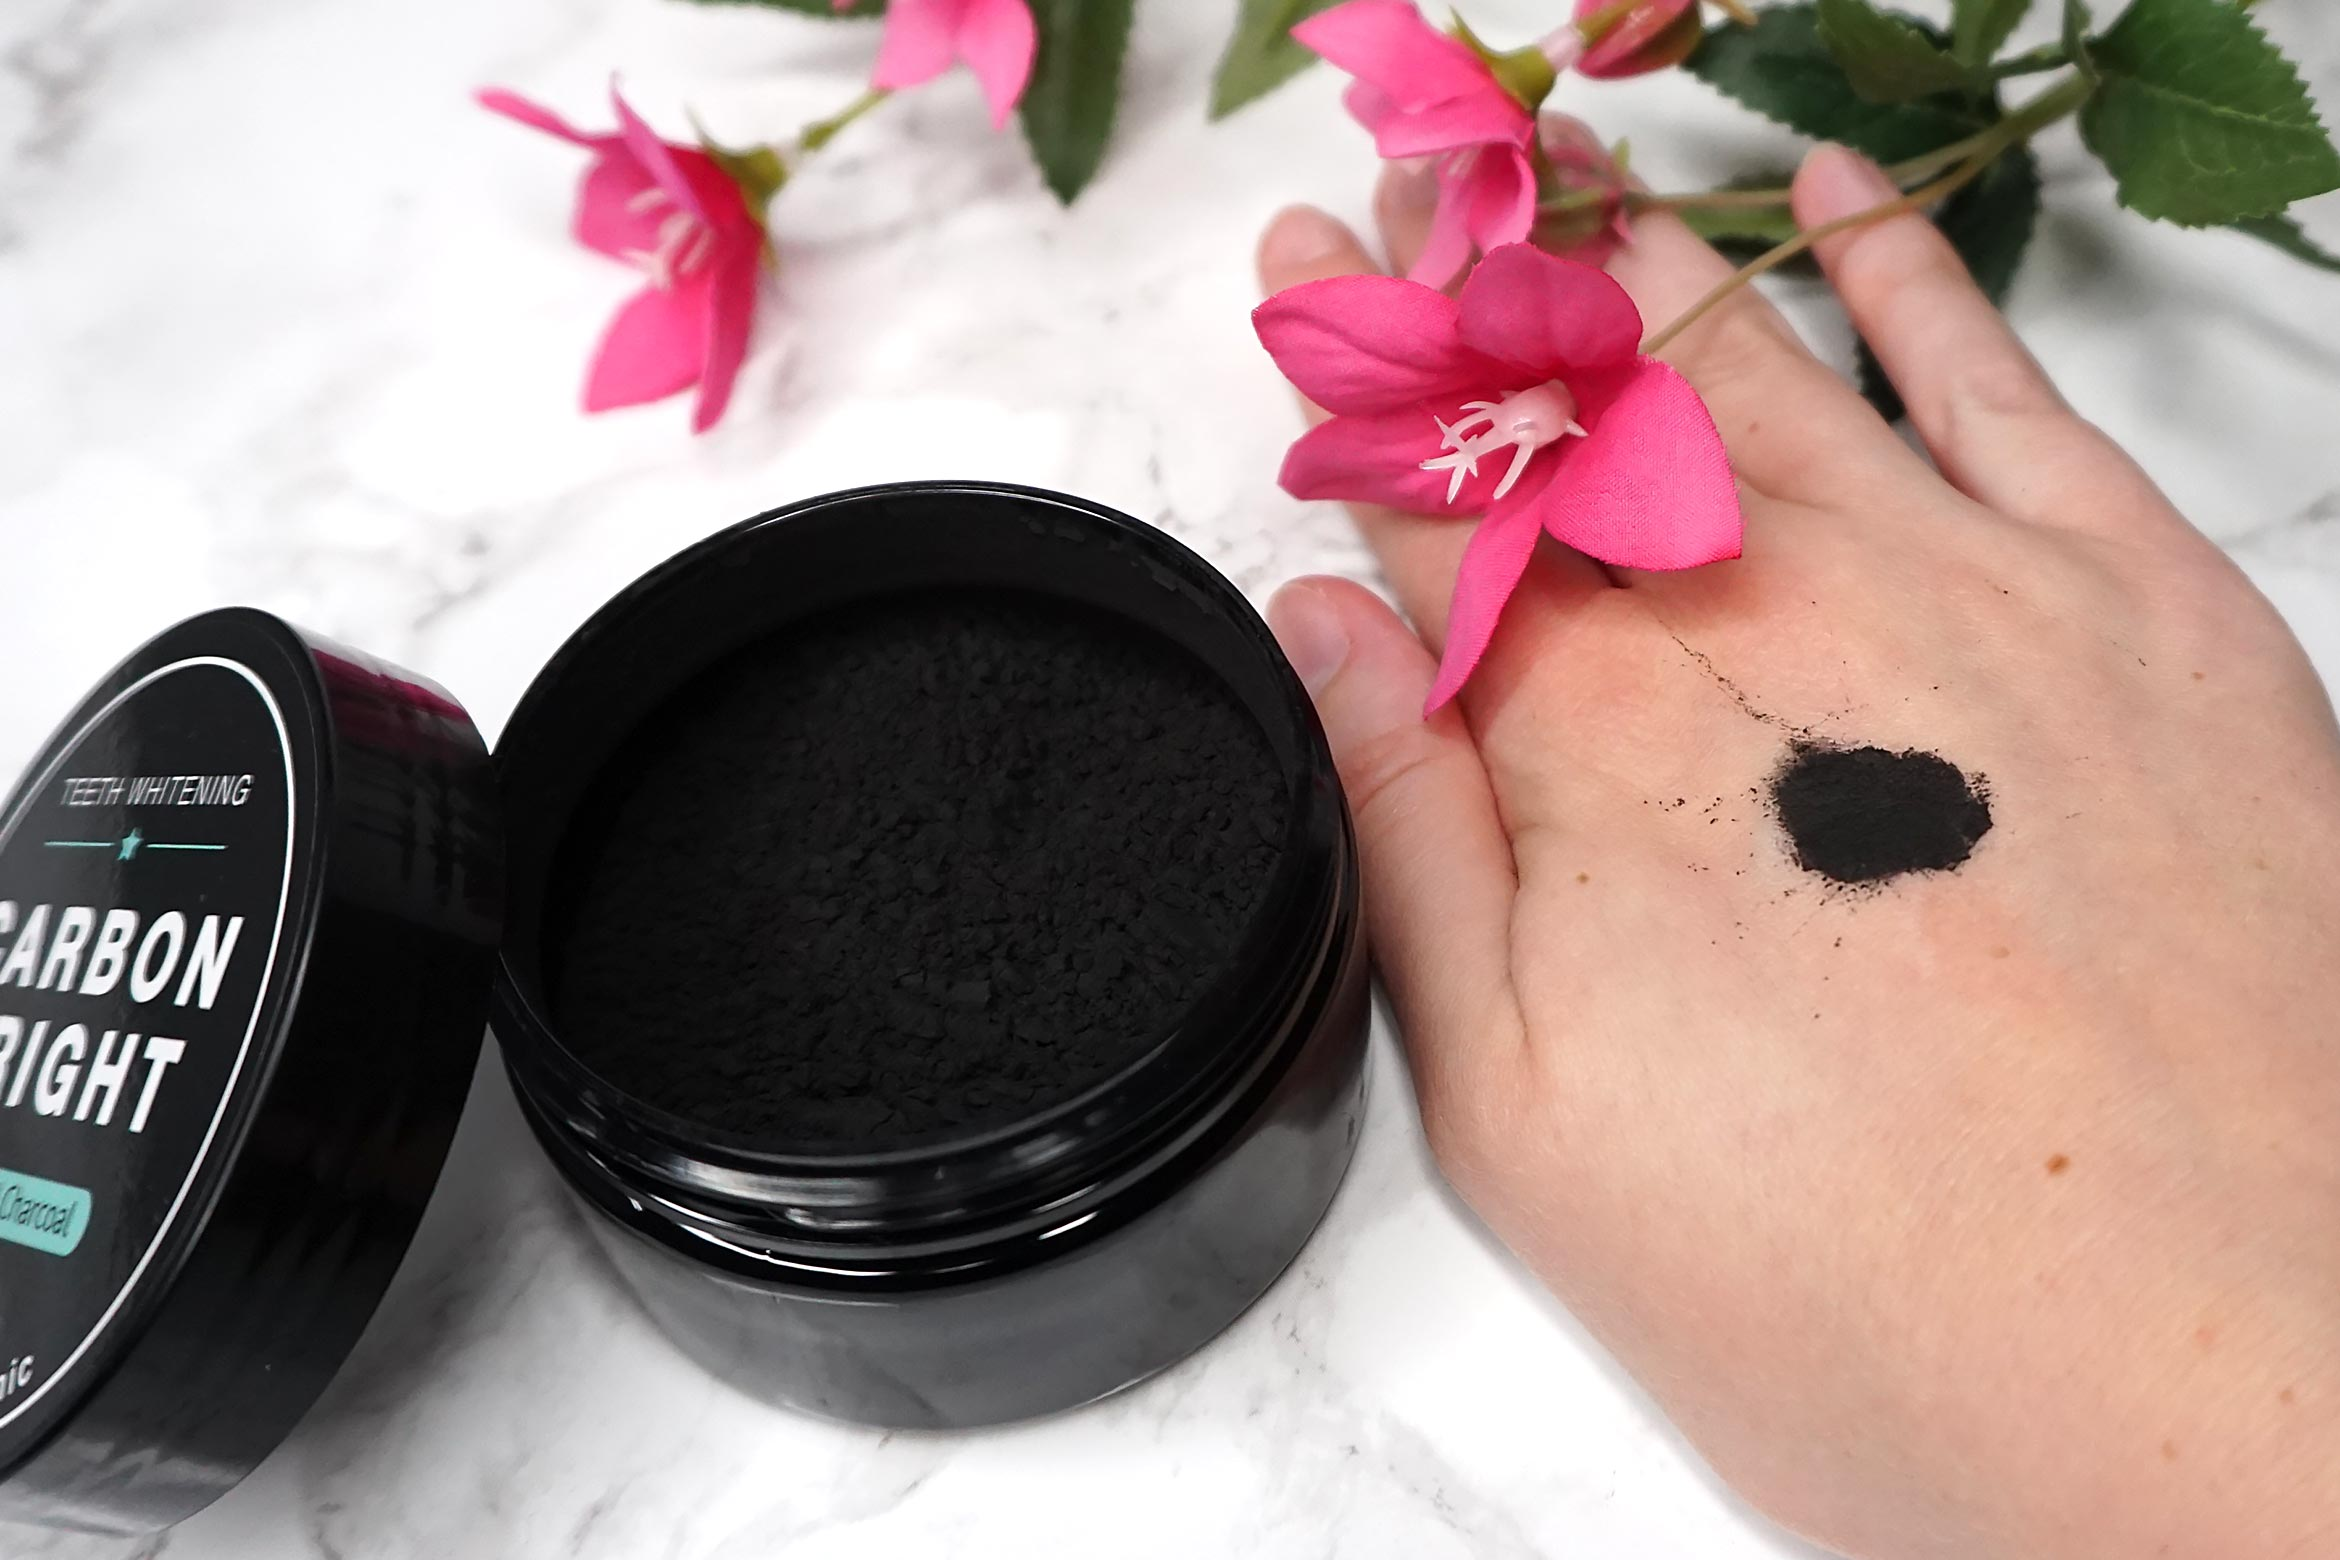 carbon-bright-activated-charcoal-review-4